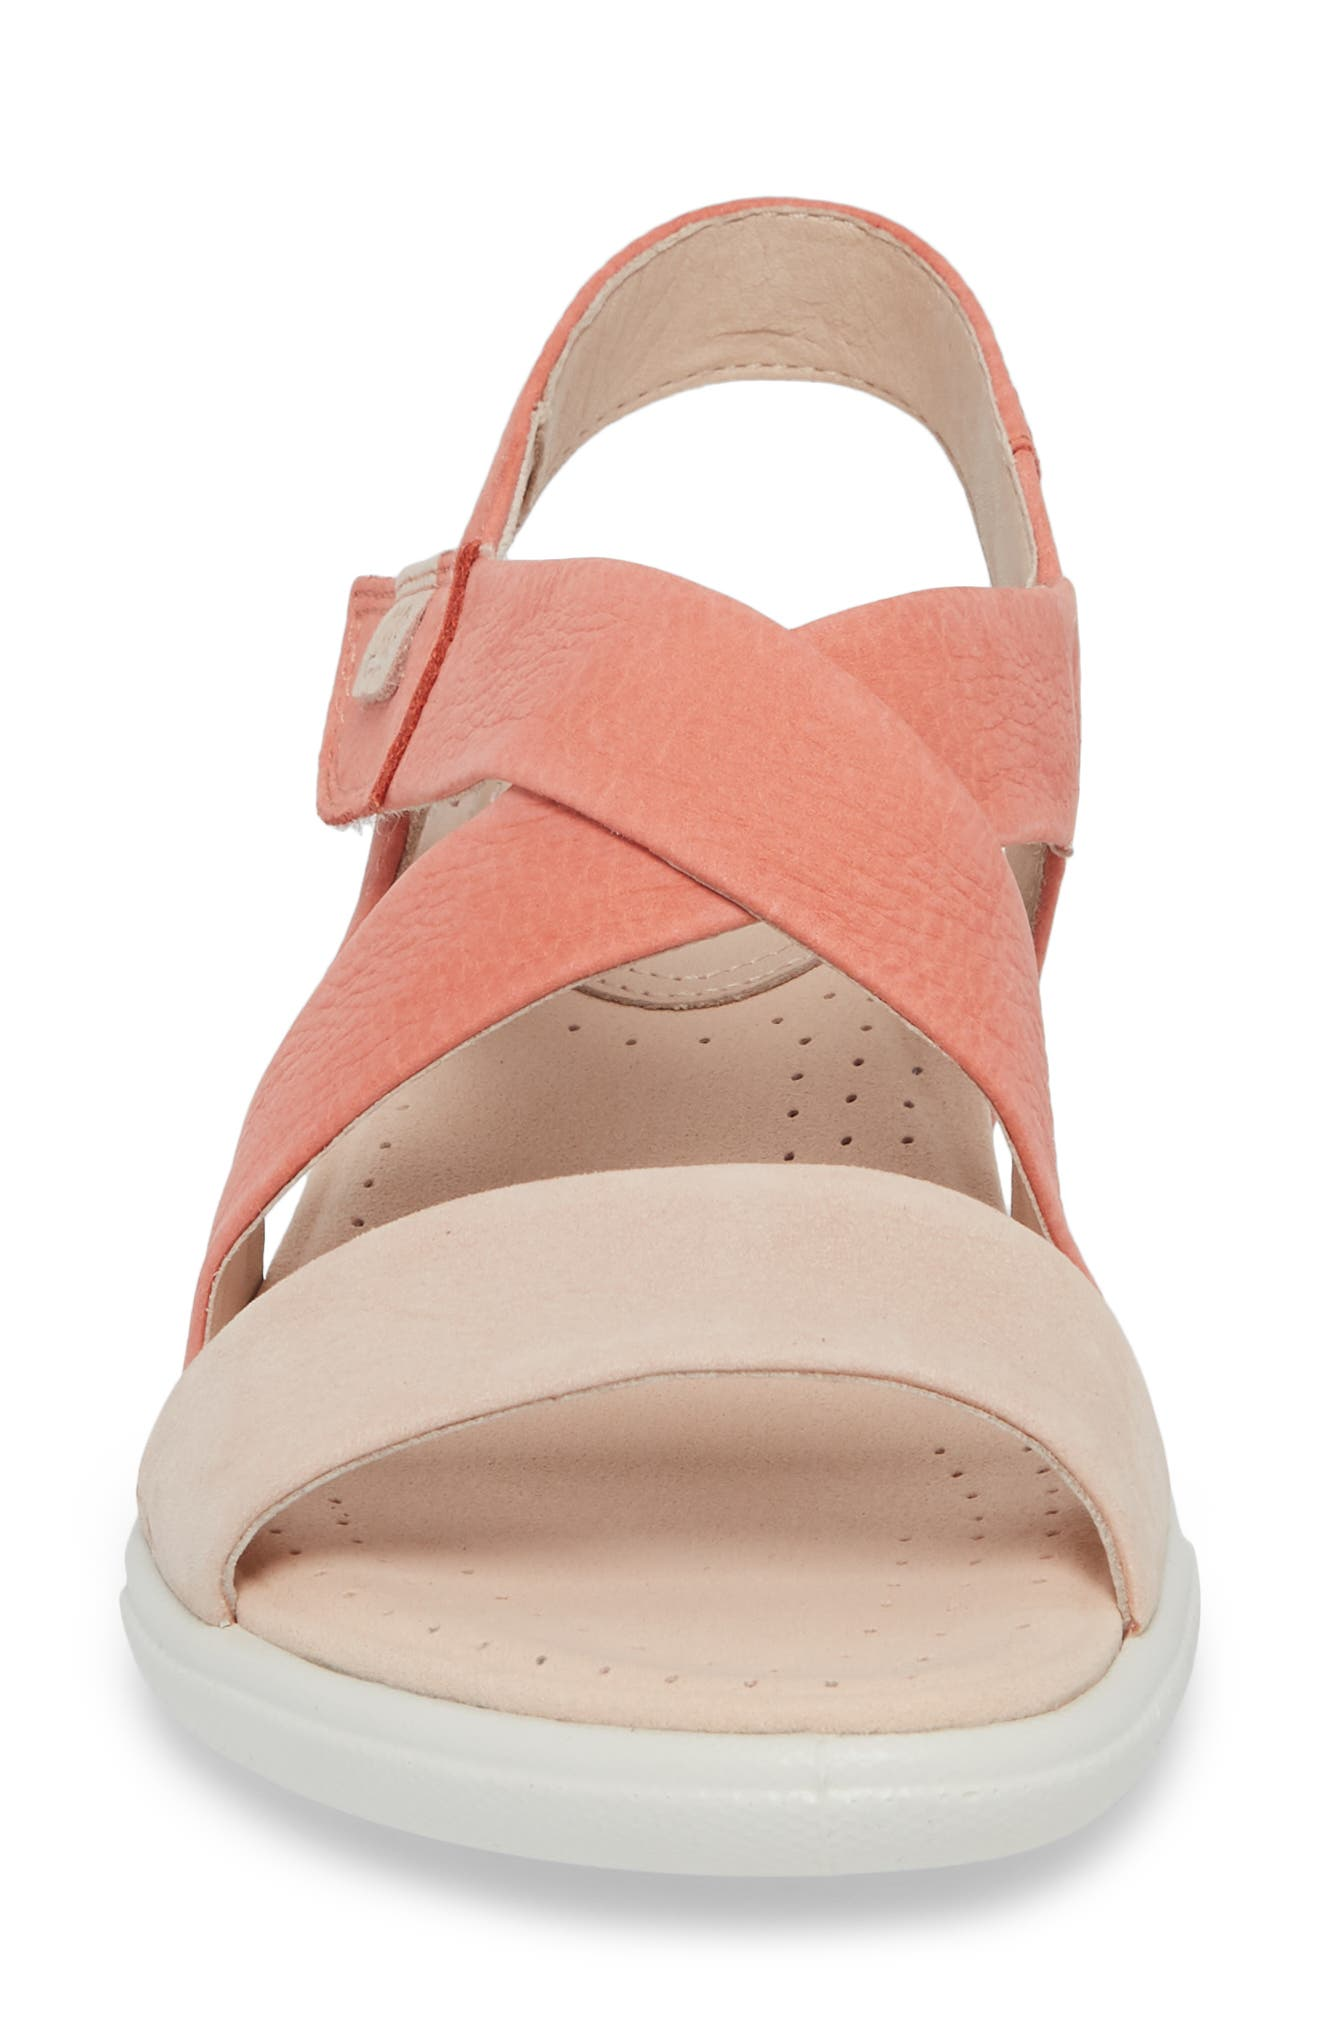 Damara Cross-Strap Sandal,                             Alternate thumbnail 25, color,